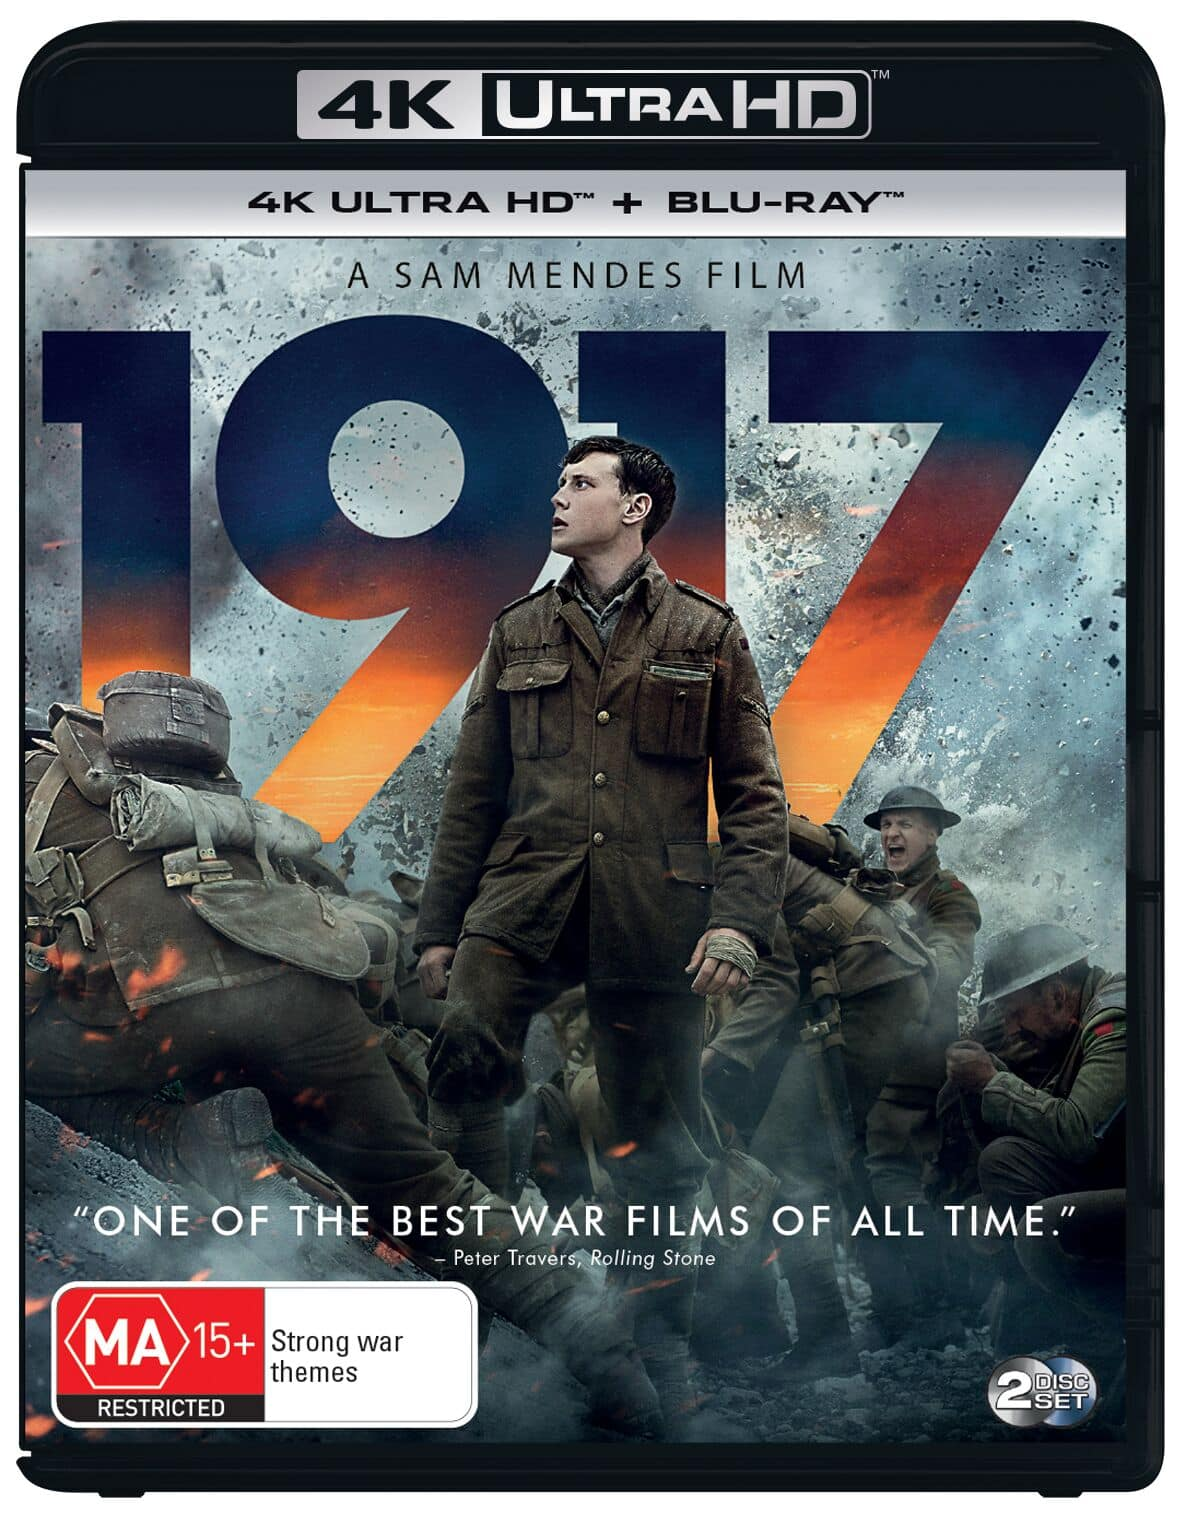 1917 on 4K Ultra HD Blu-ray Giveaway